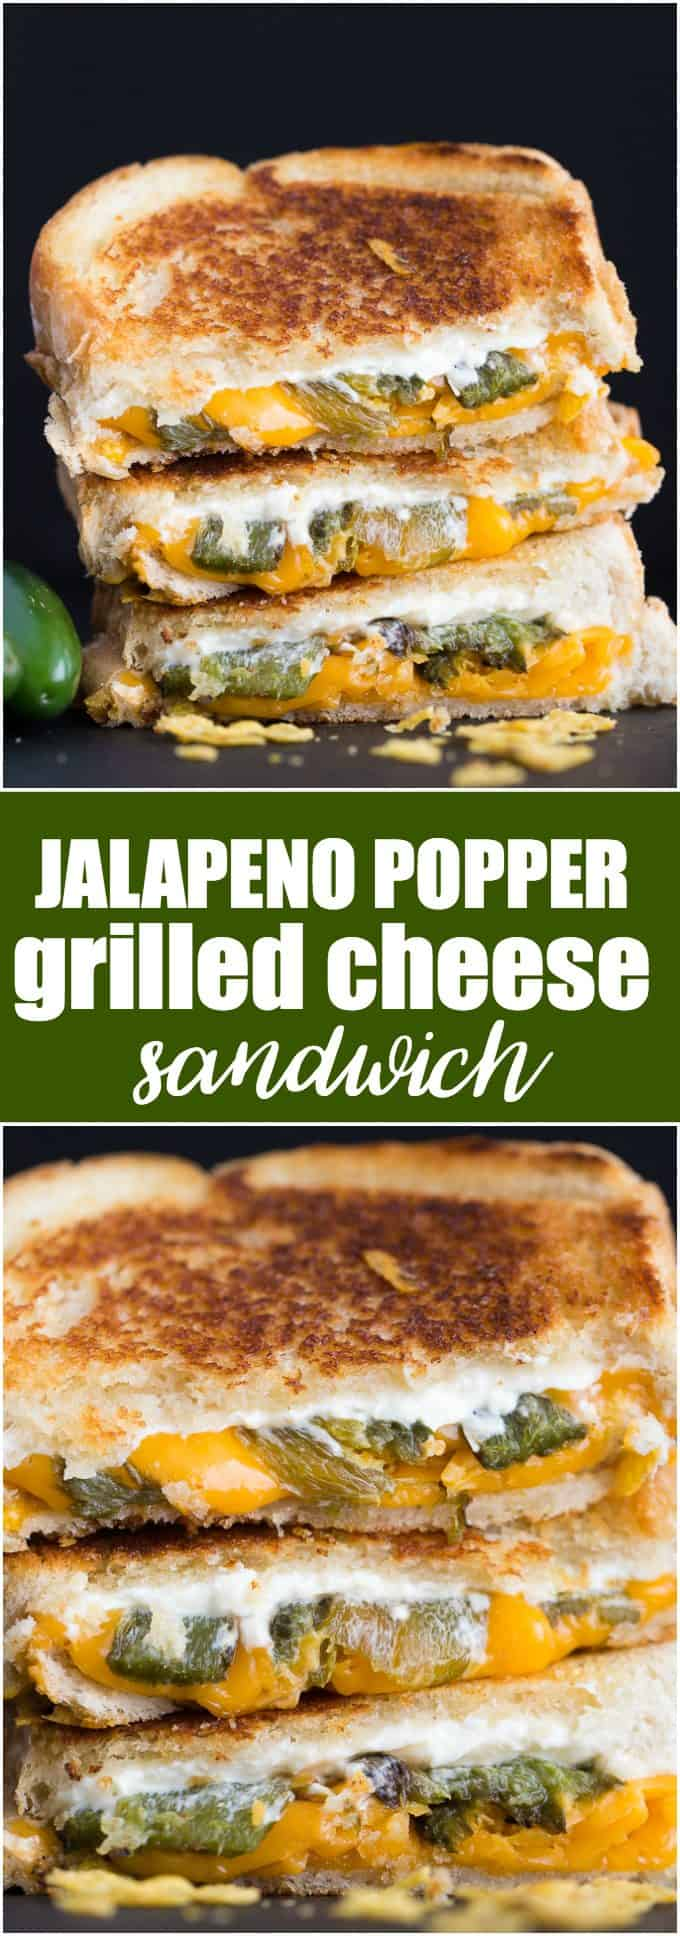 Jalapeno Popper Grilled Cheese Sandwich - The BEST grilled cheese recipe! Stuff your favorite zesty appetizer between crunchy toasted bread and smothered in more cheese.